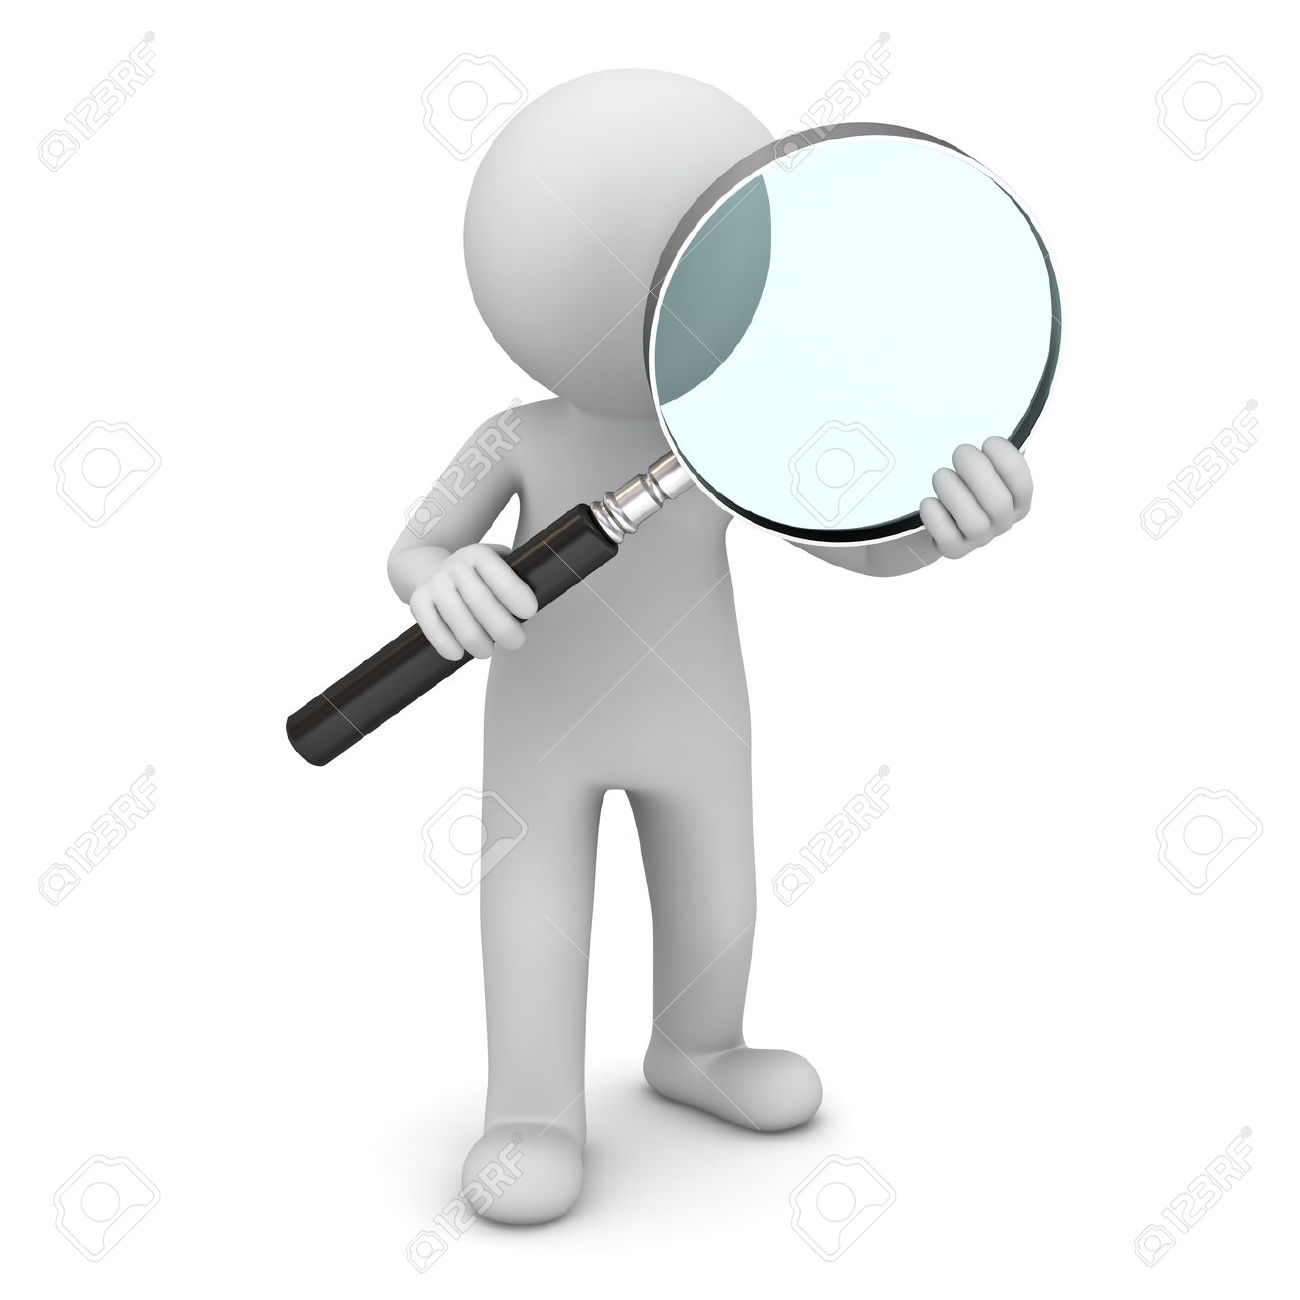 3d man standing and holding magnifying glass isolated over white